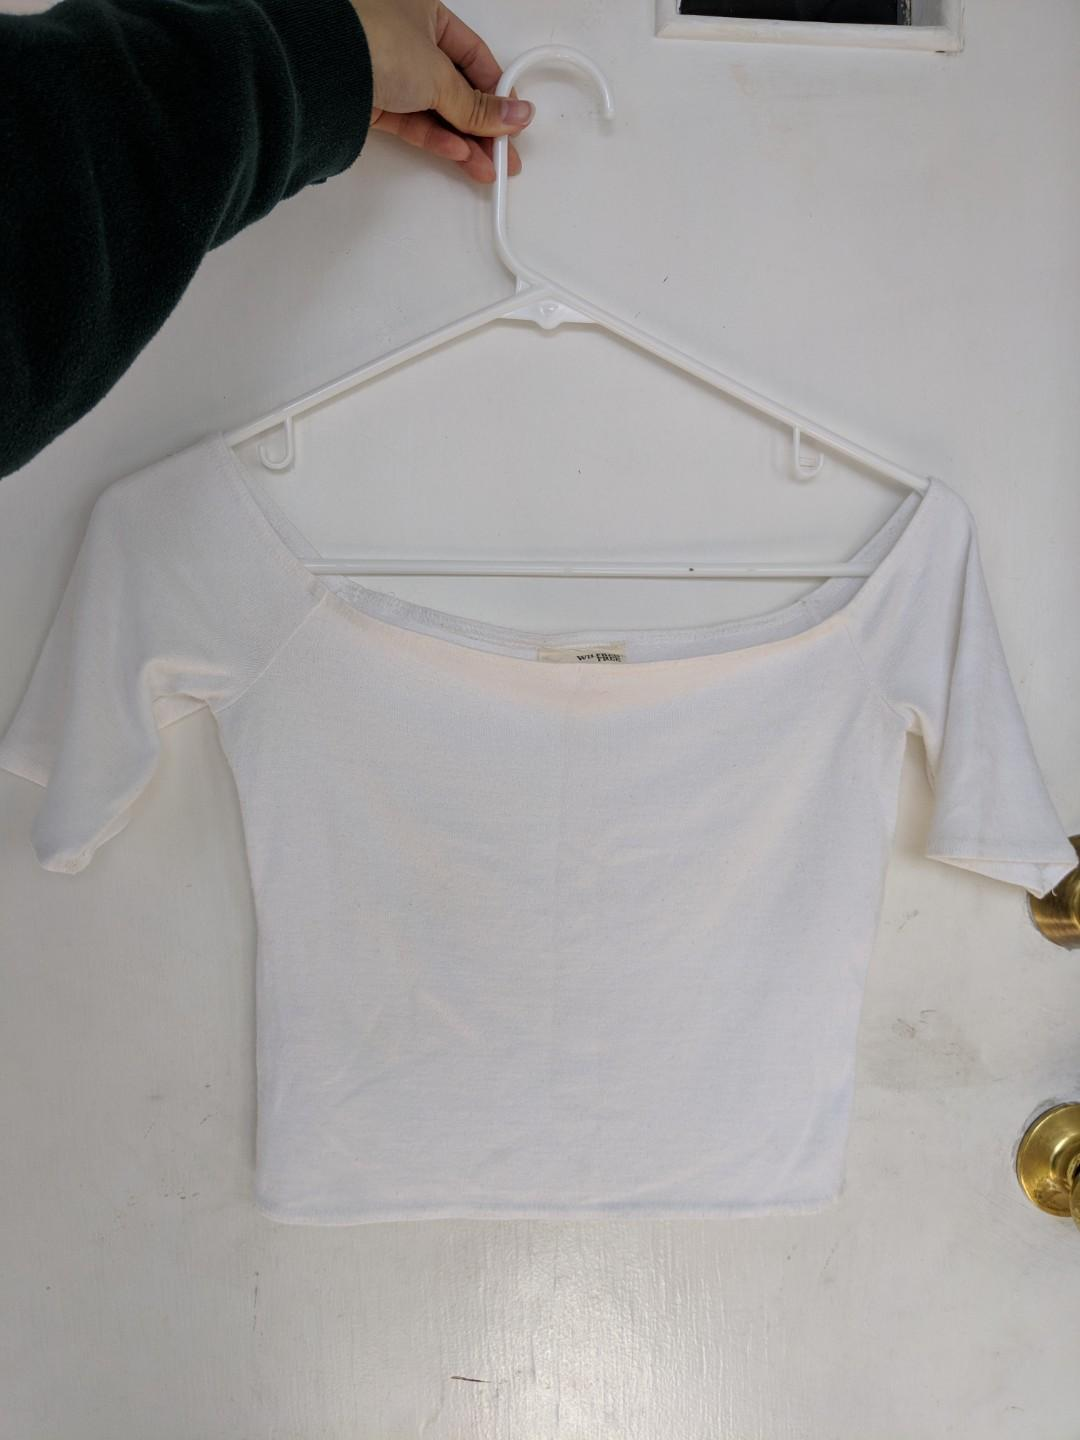 Aritzia wilfred free off the shoulder crop, size S